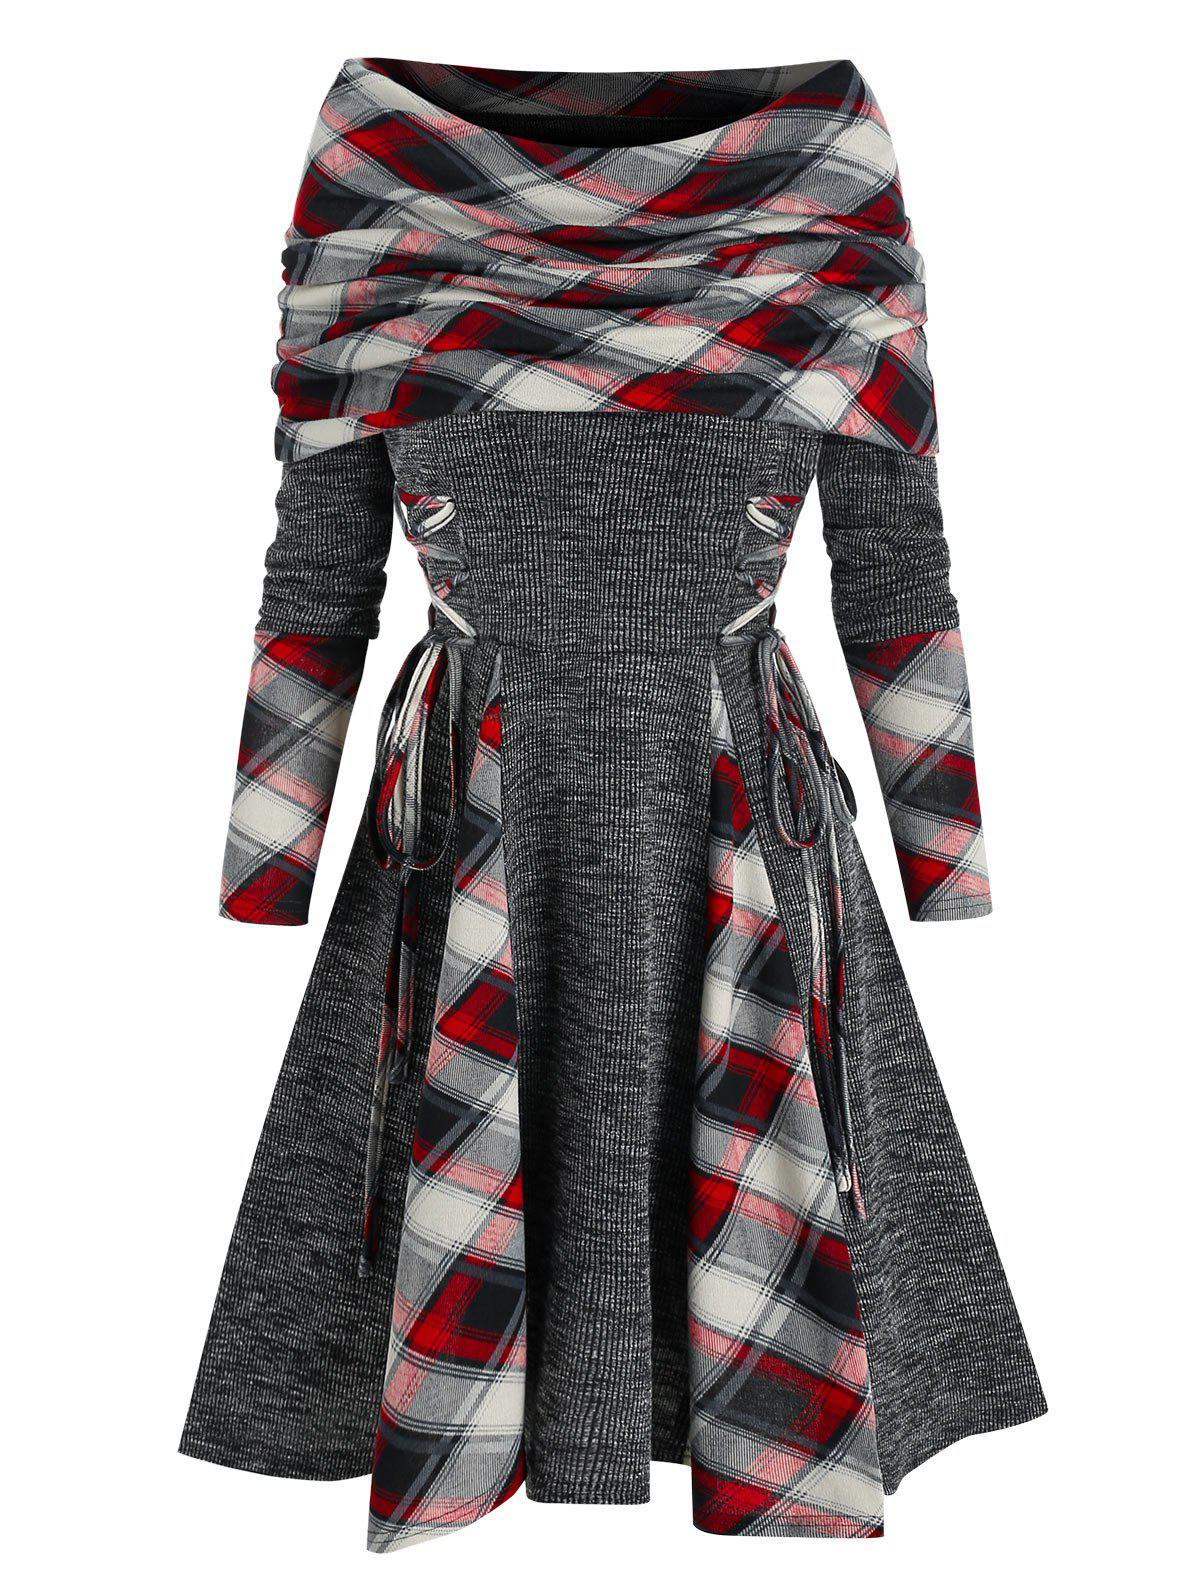 Plaid Print Lace-up Convertible Dress - multicolor A M